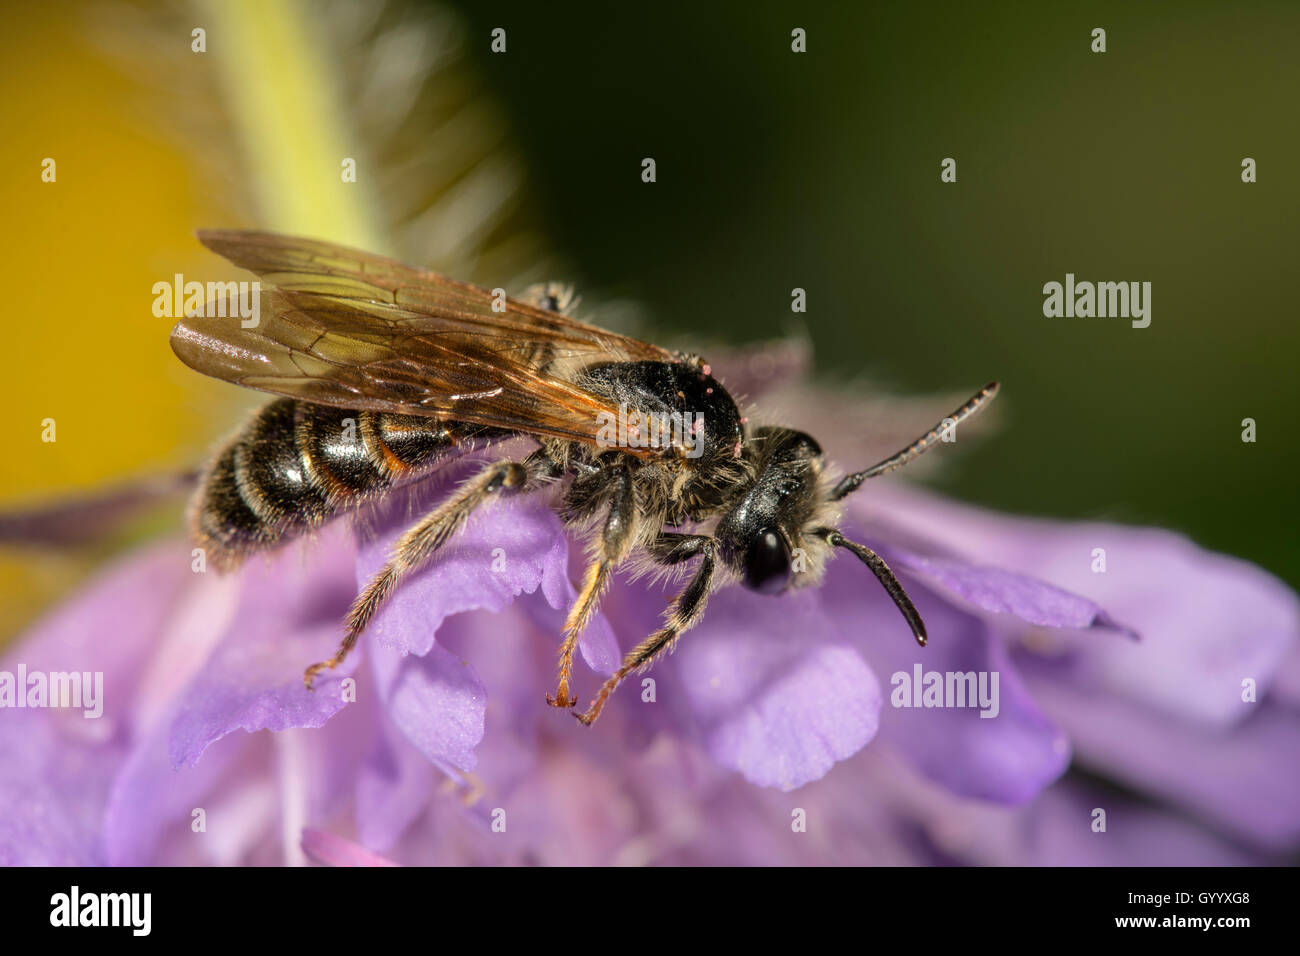 Banded Dark-Bee (Stelis punctulatissima) on Field Scabious (Knautia arvensis), Baden-Württemberg, Germany - Stock Image